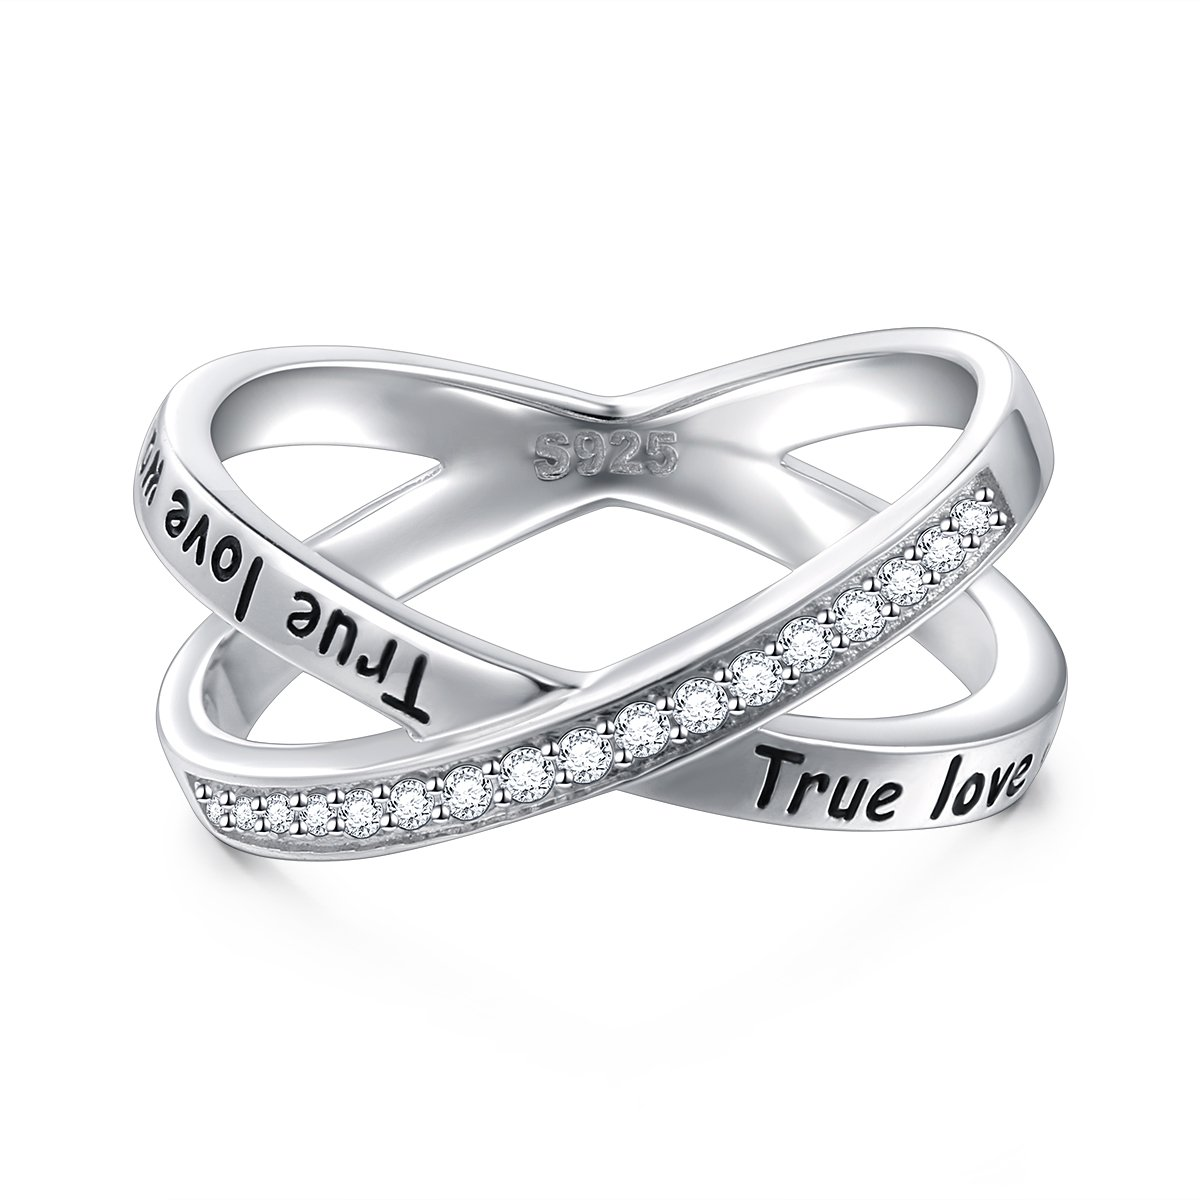 S925 Sterling Silver True Love Waits Infinity Criss Cross Rings for Women Lady, Size 7 by Silver Light Jewelry (Image #2)